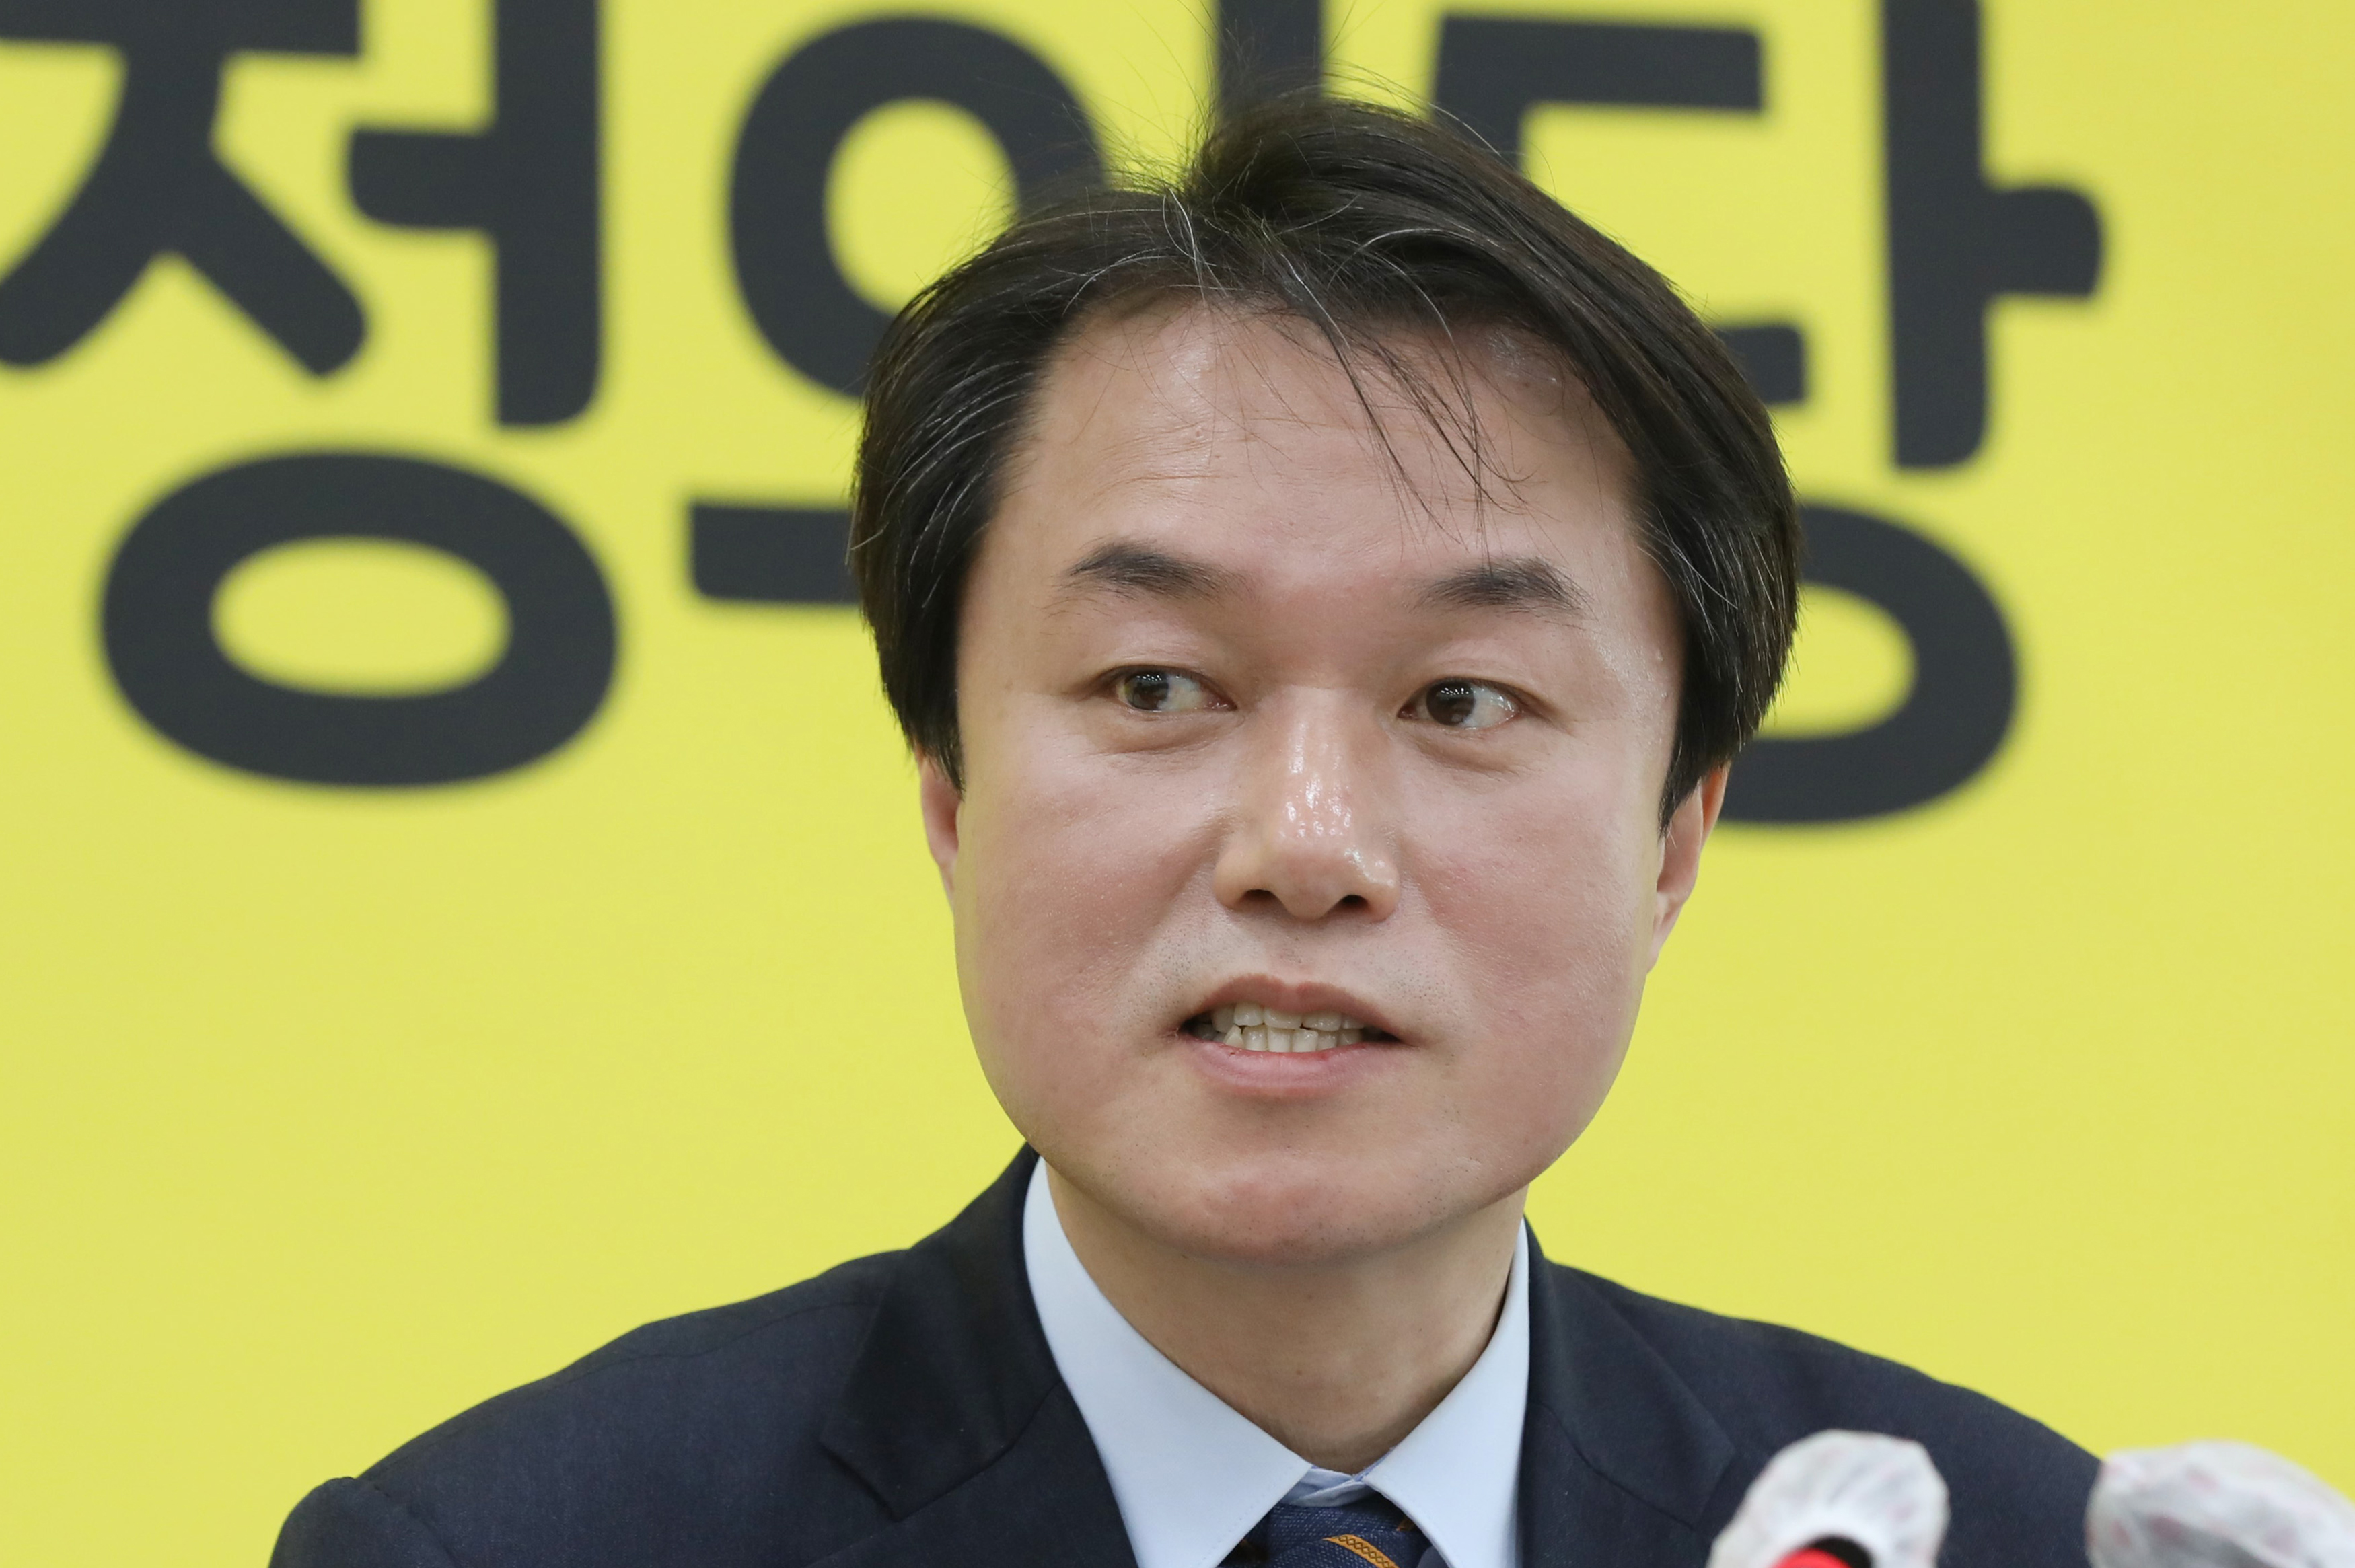 South Korea's Justice Party chief steps down amid sexual harassment claims